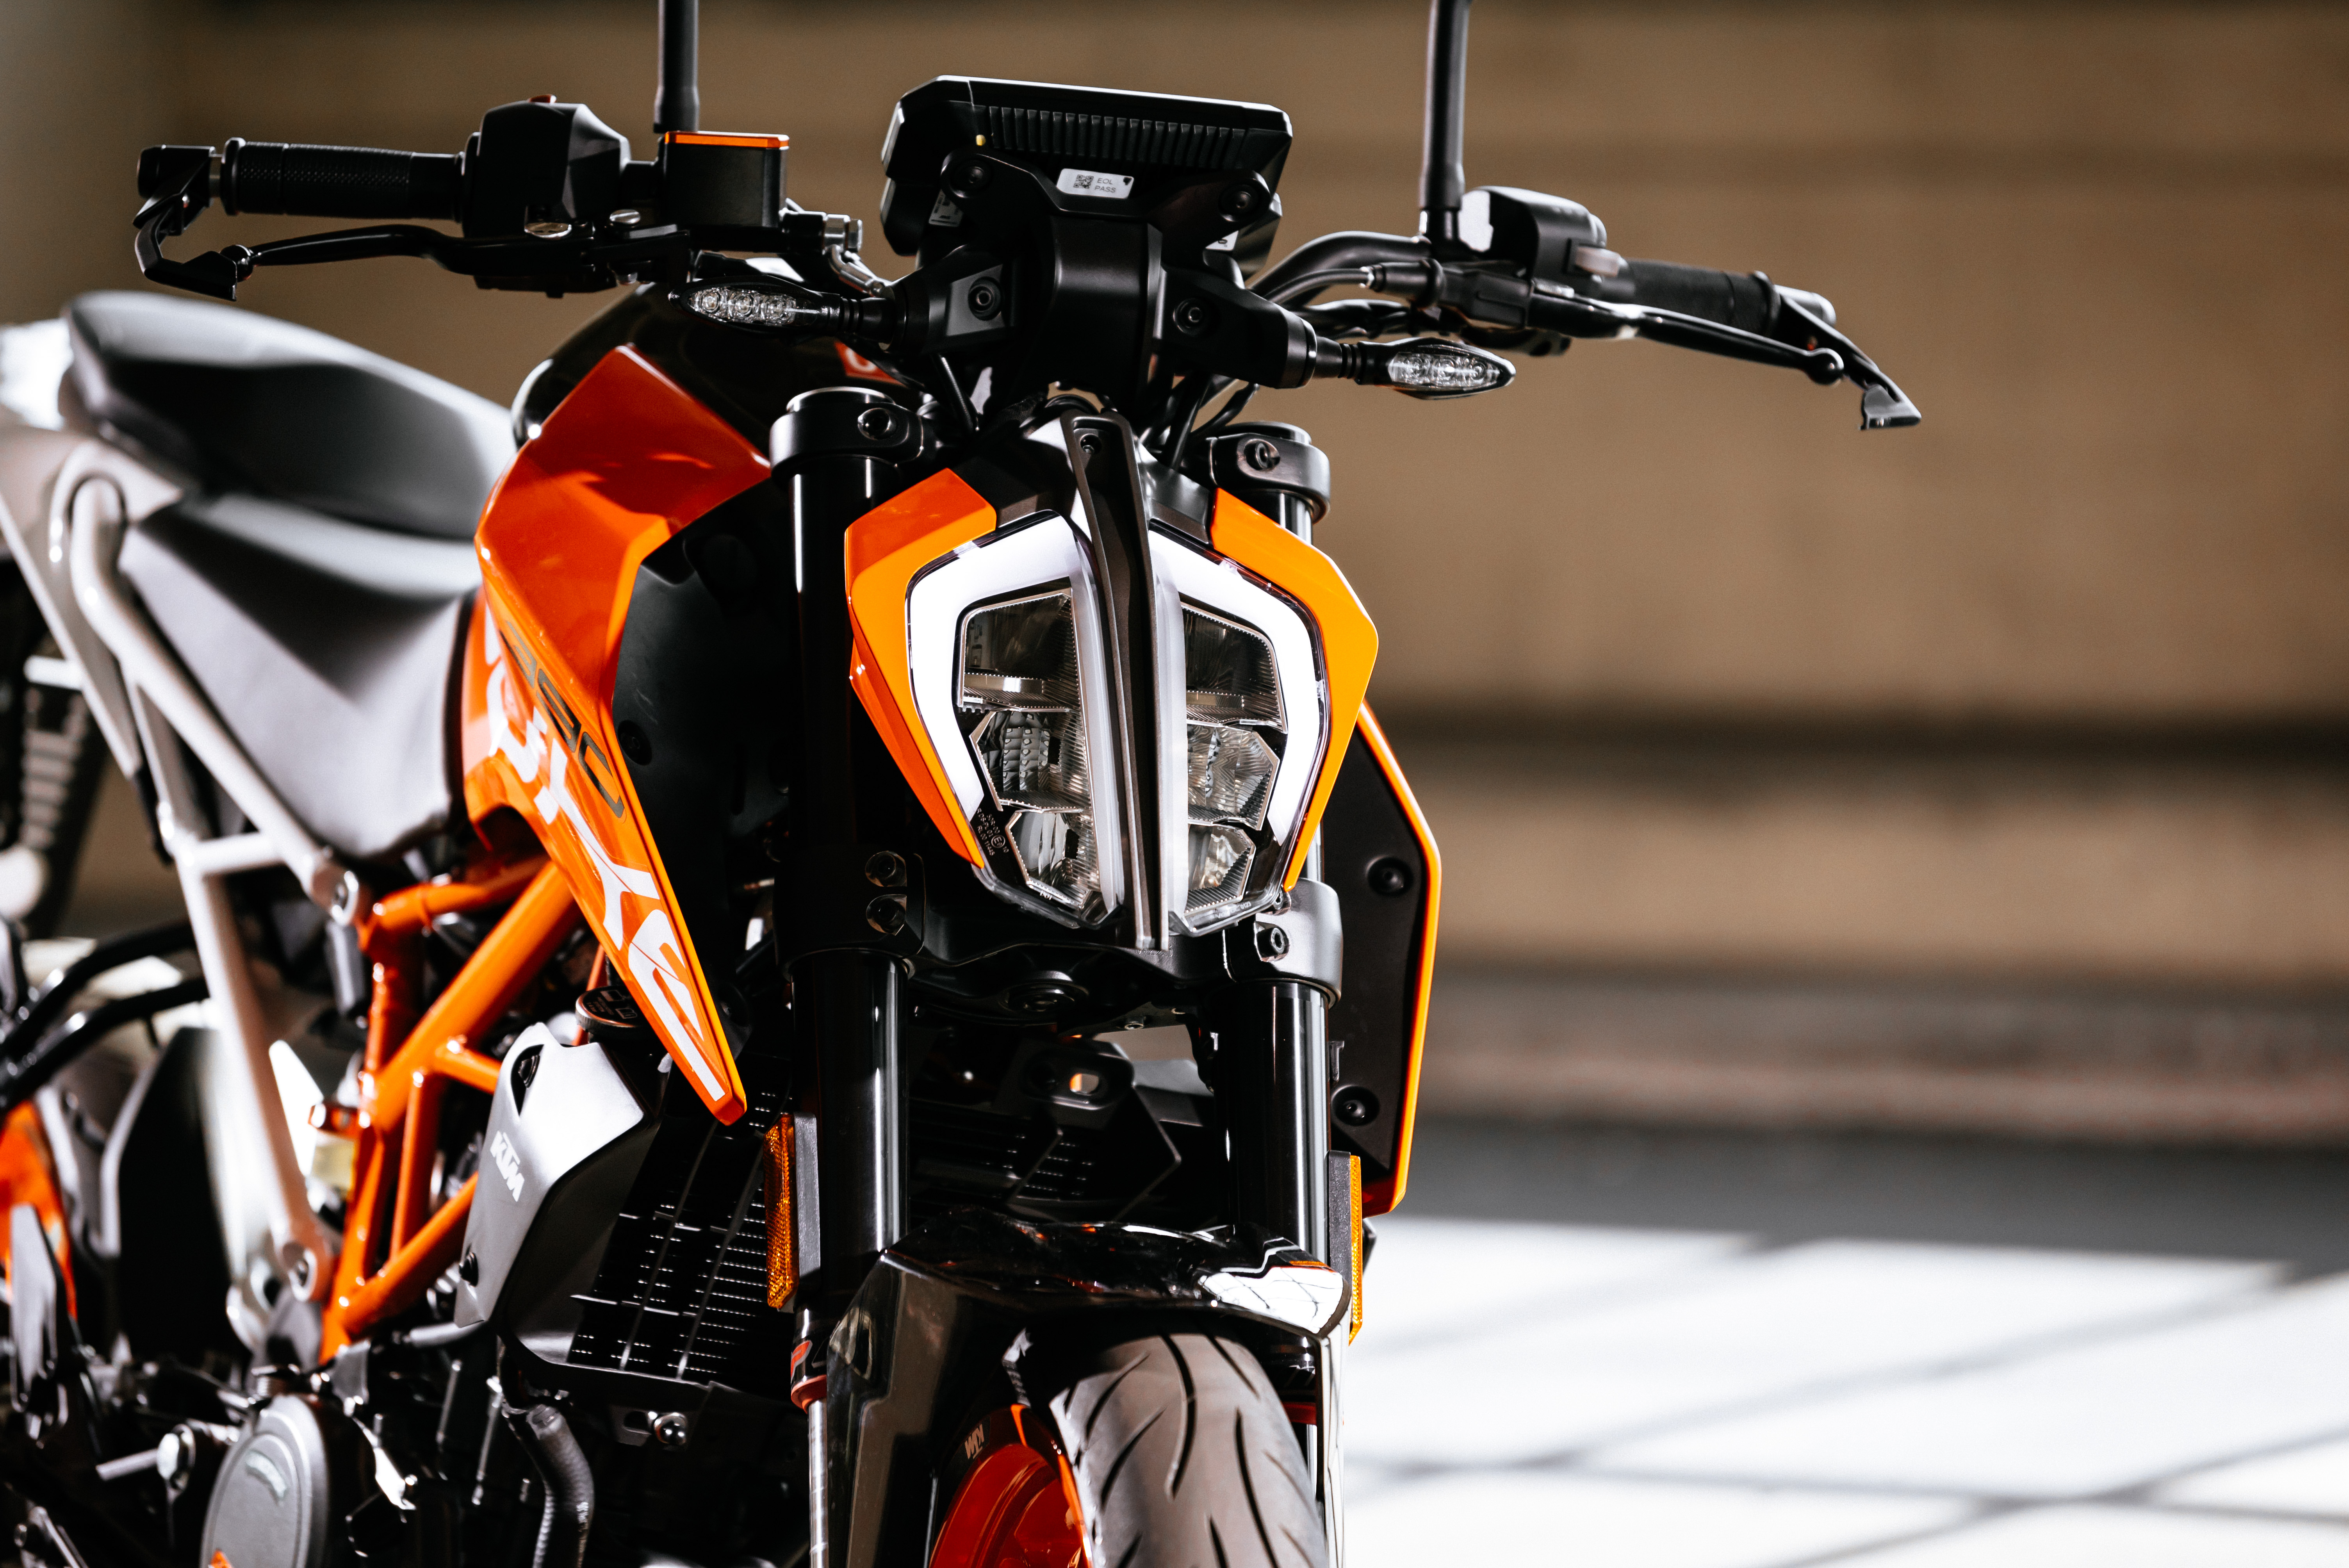 & 2017 KTM 390 Duke first ride review - RevZilla